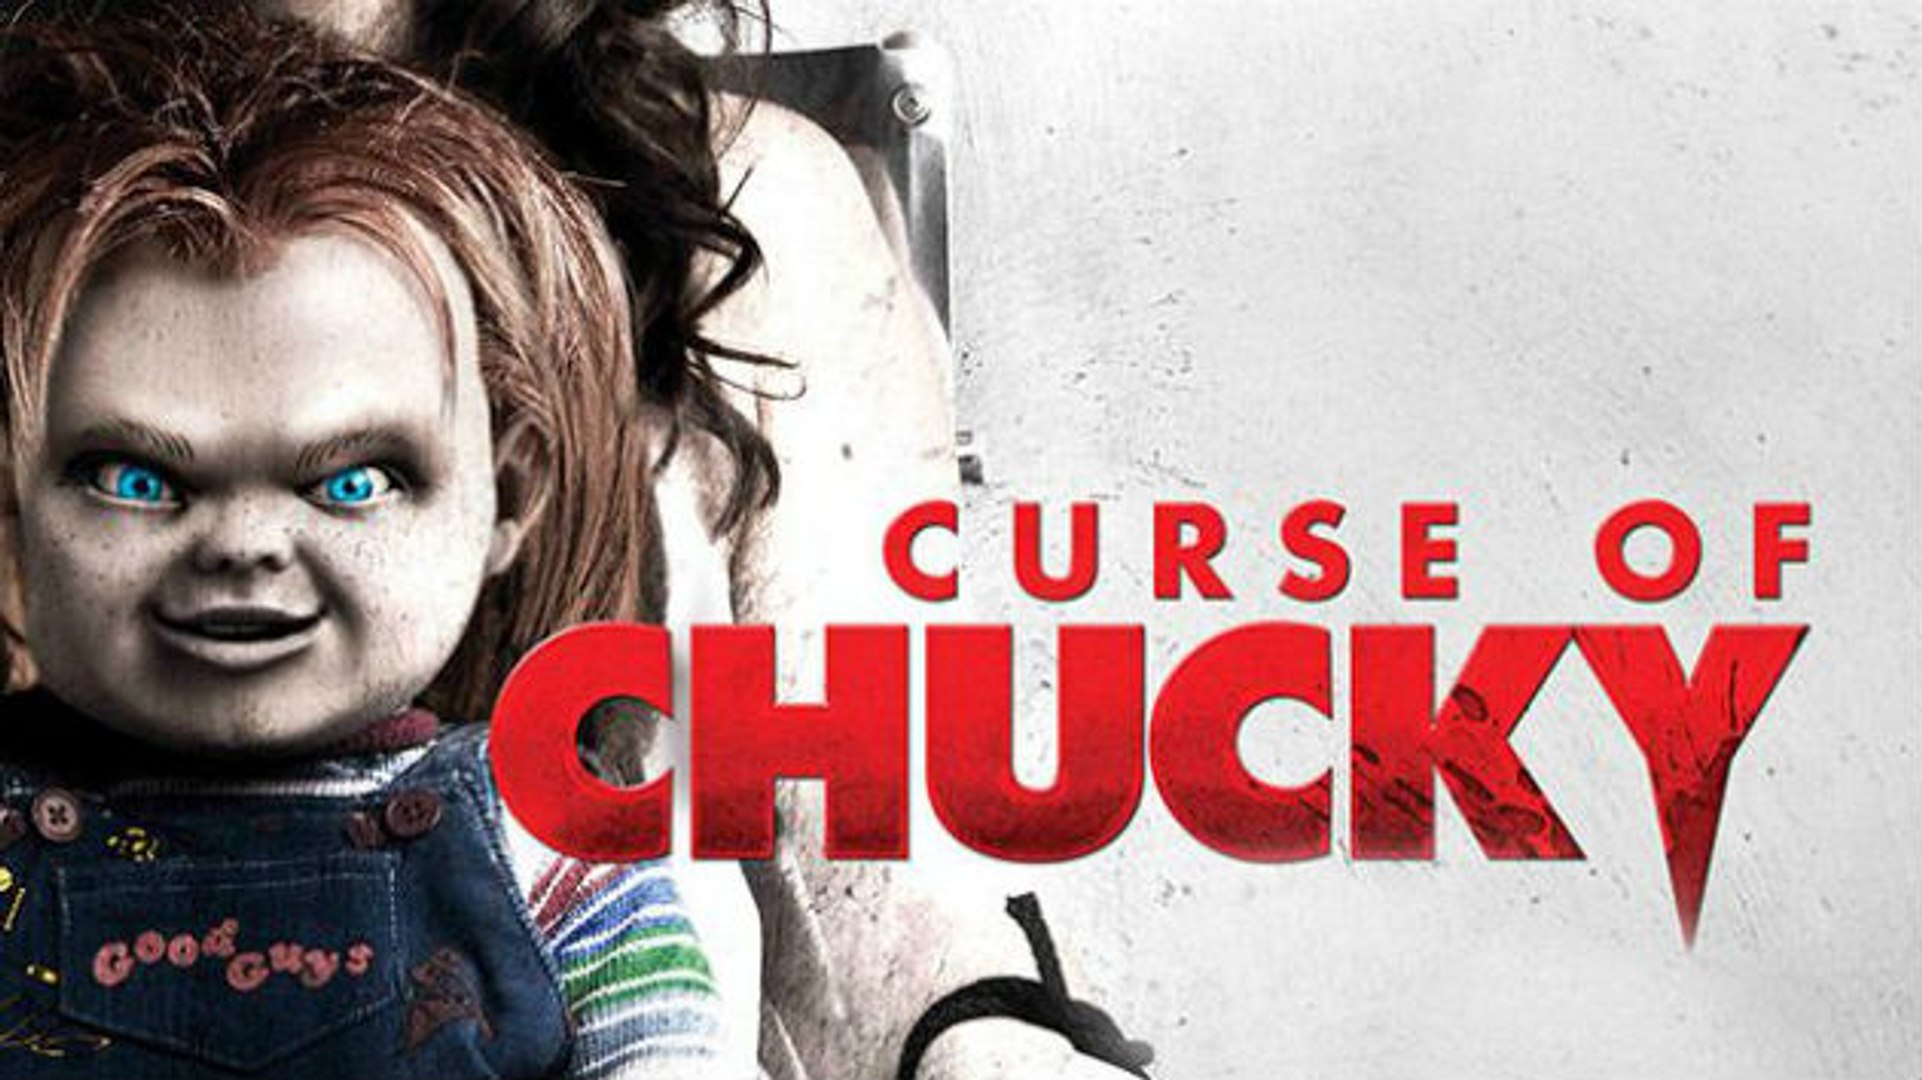 Cures of chucky